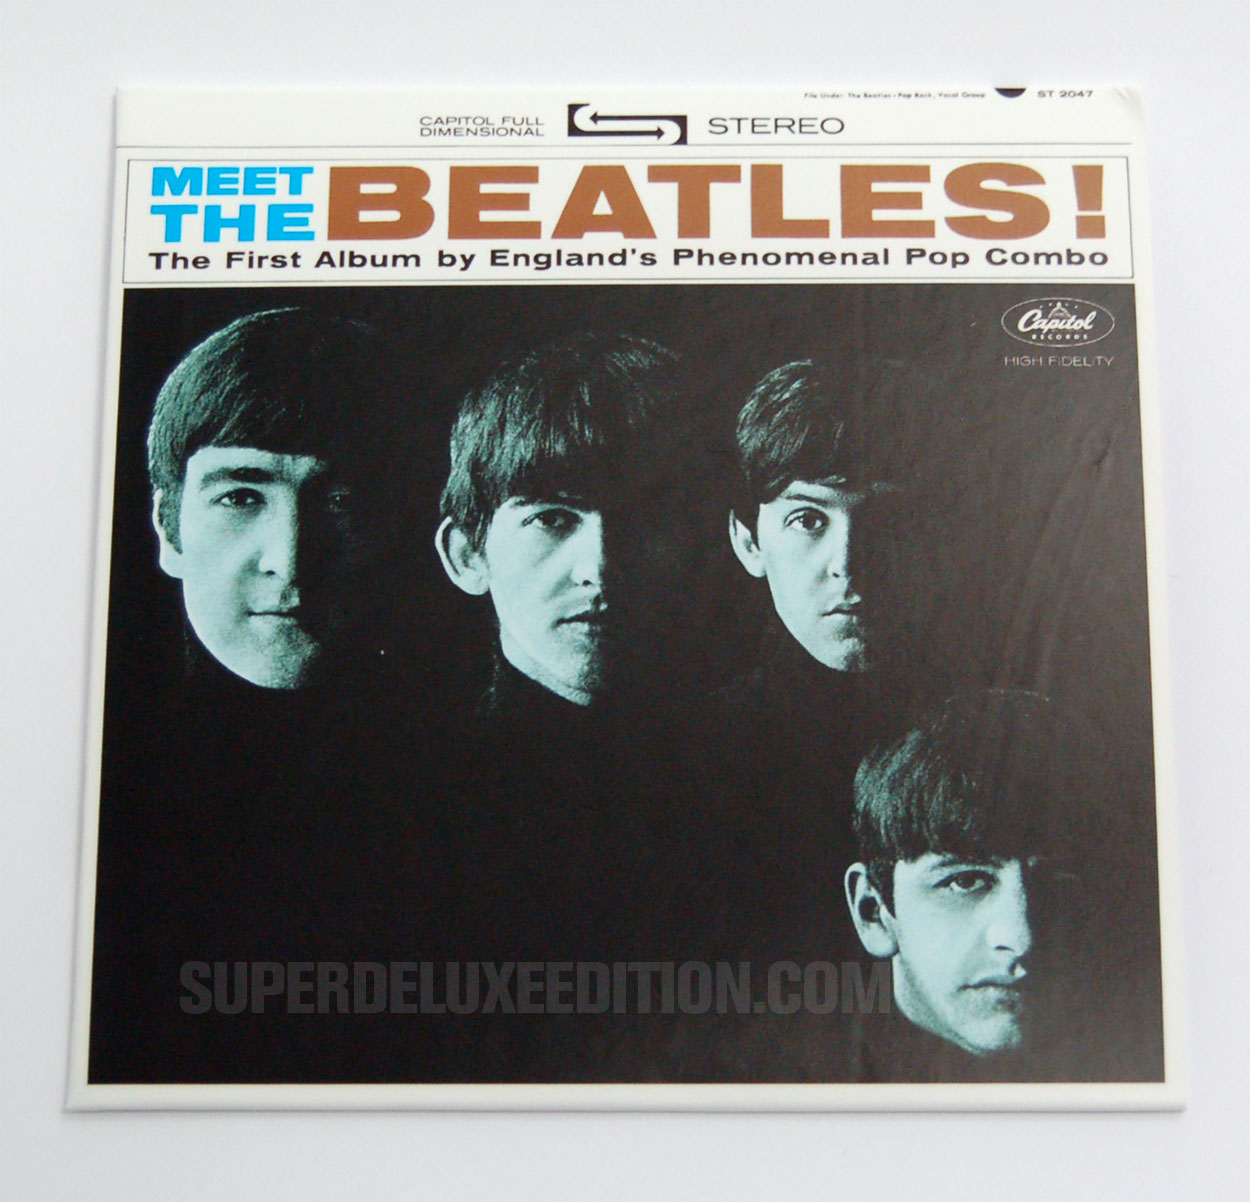 FIRST PICTURES: The Beatles / US Albums: Meet The Beatles!